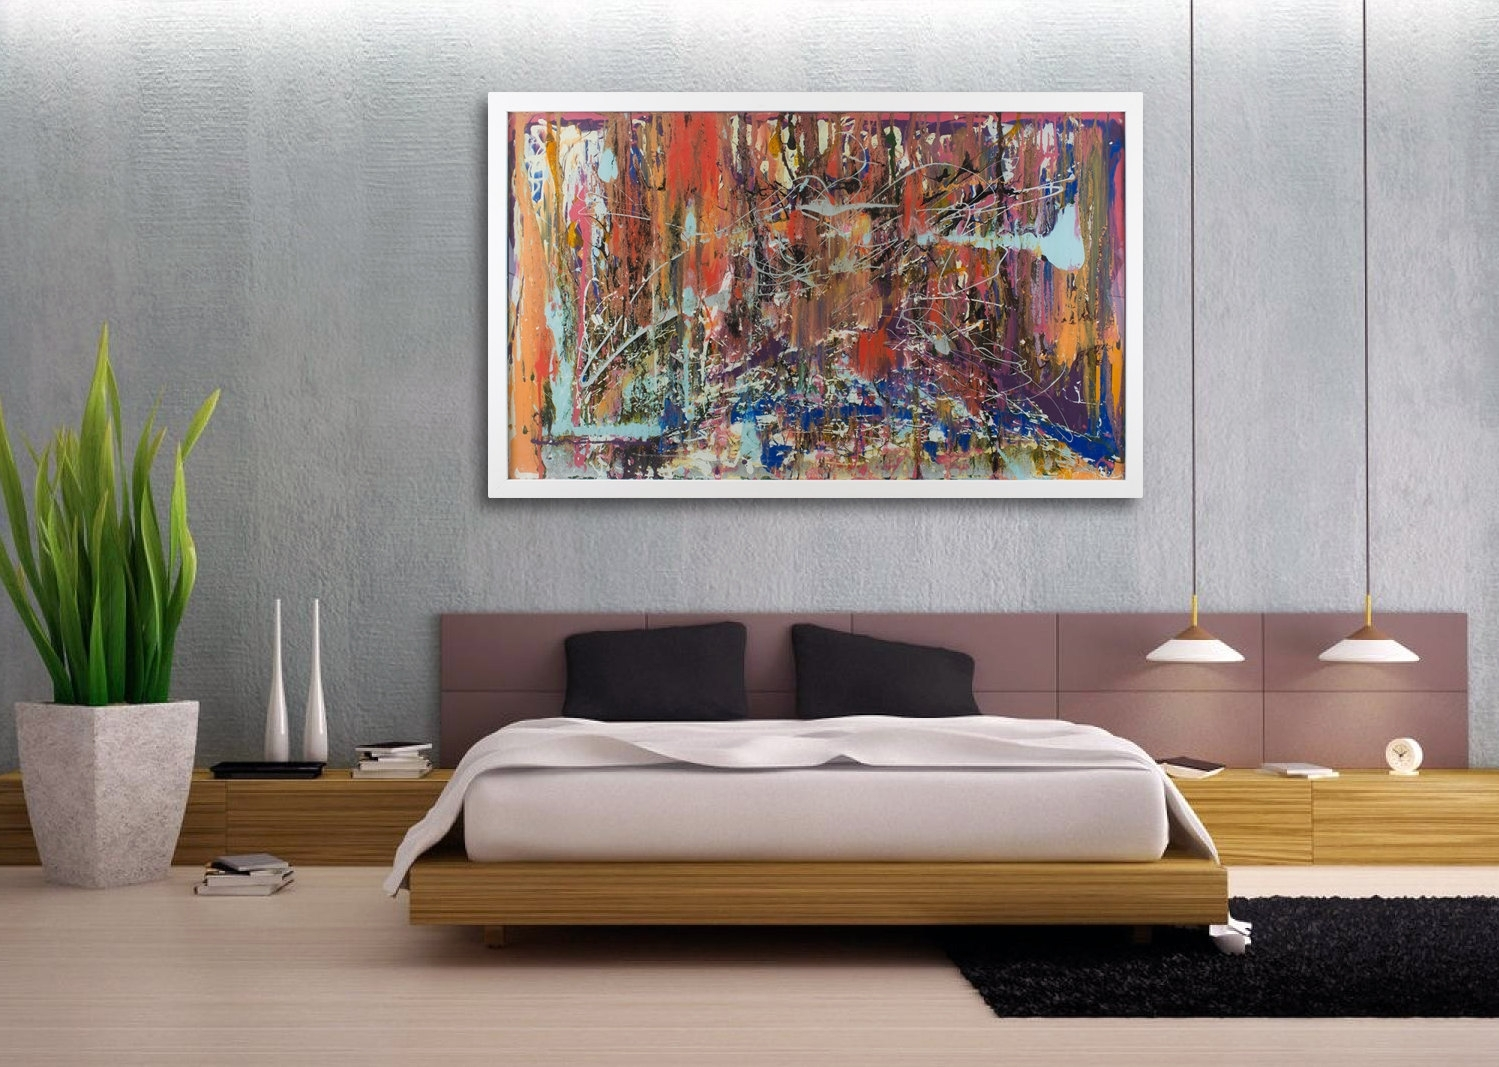 Expensive Large Canvas Wall Art Bedroom — Joanne Russo Homesjoanne With Most Popular Bedroom Canvas Wall Art (View 10 of 15)